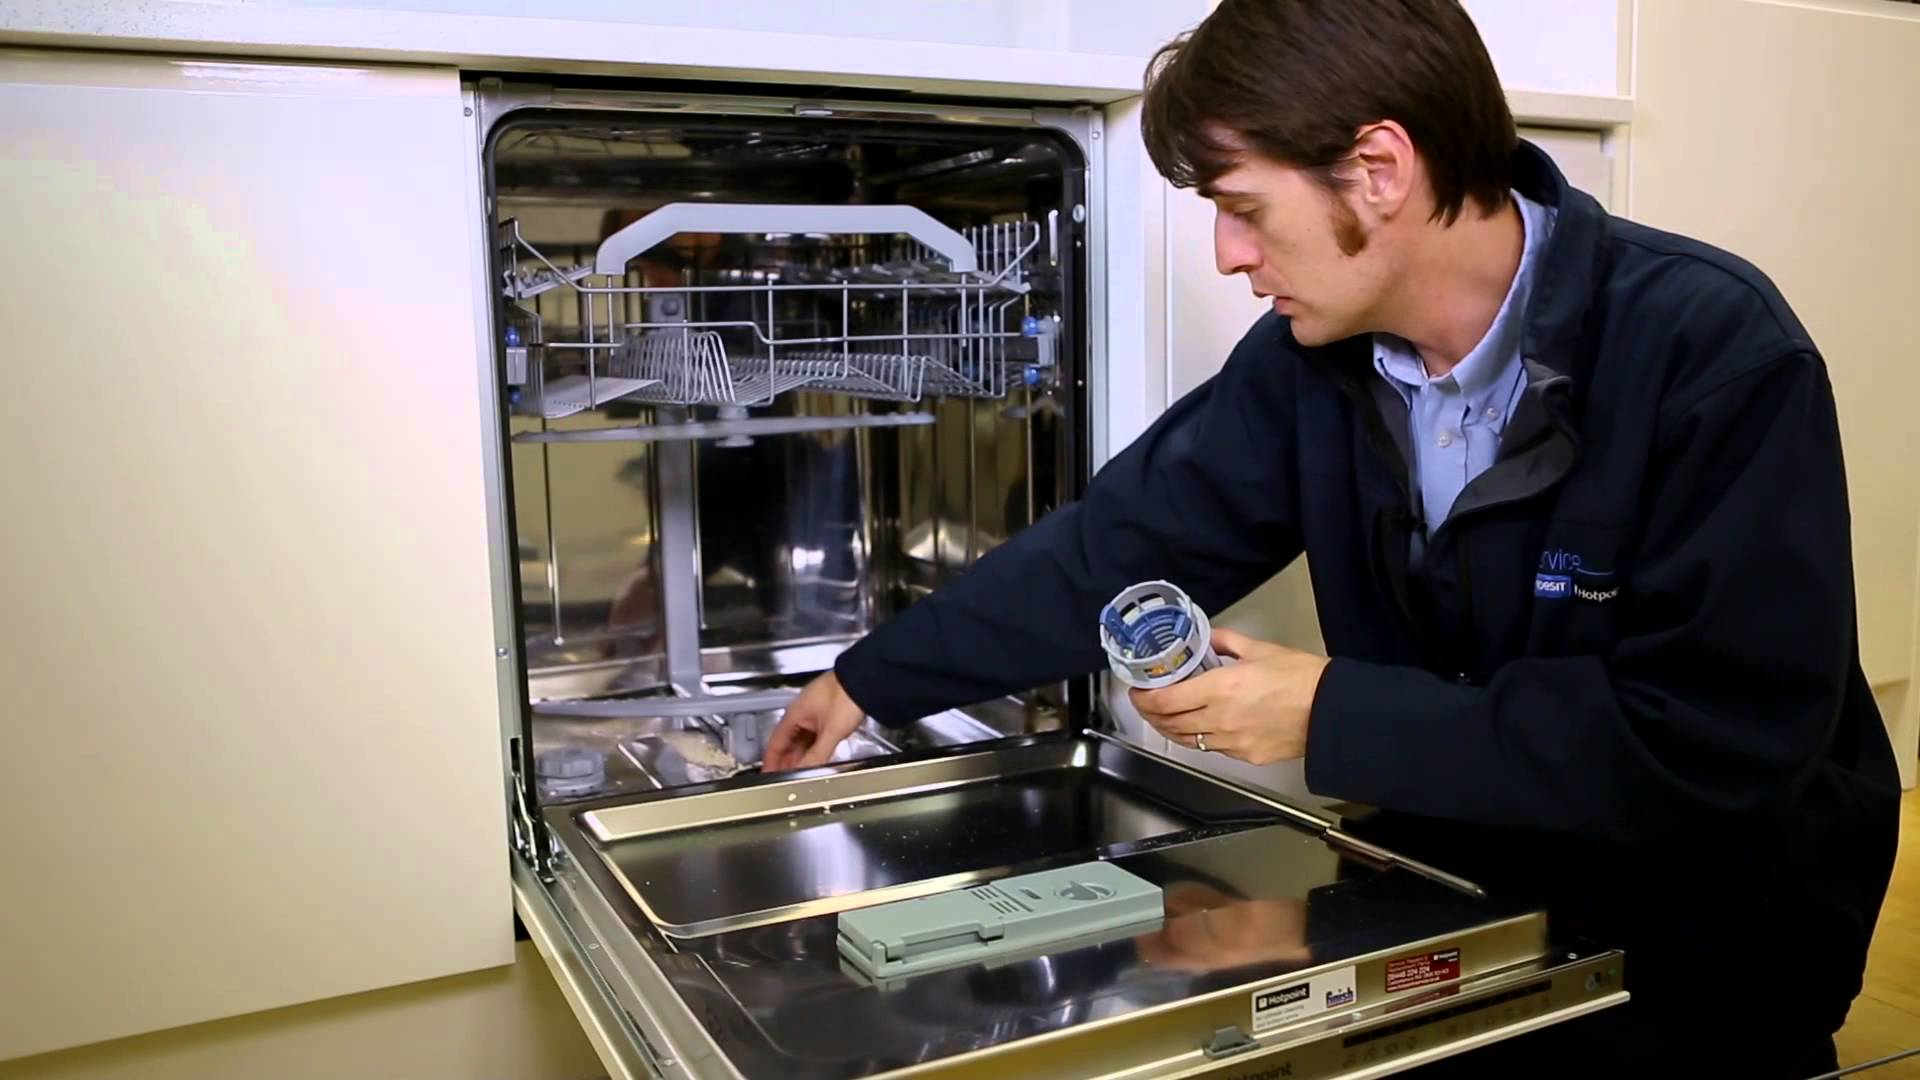 Miele Dishwasher Reviews >> How to Clean a Dishwasher - Step by step guide